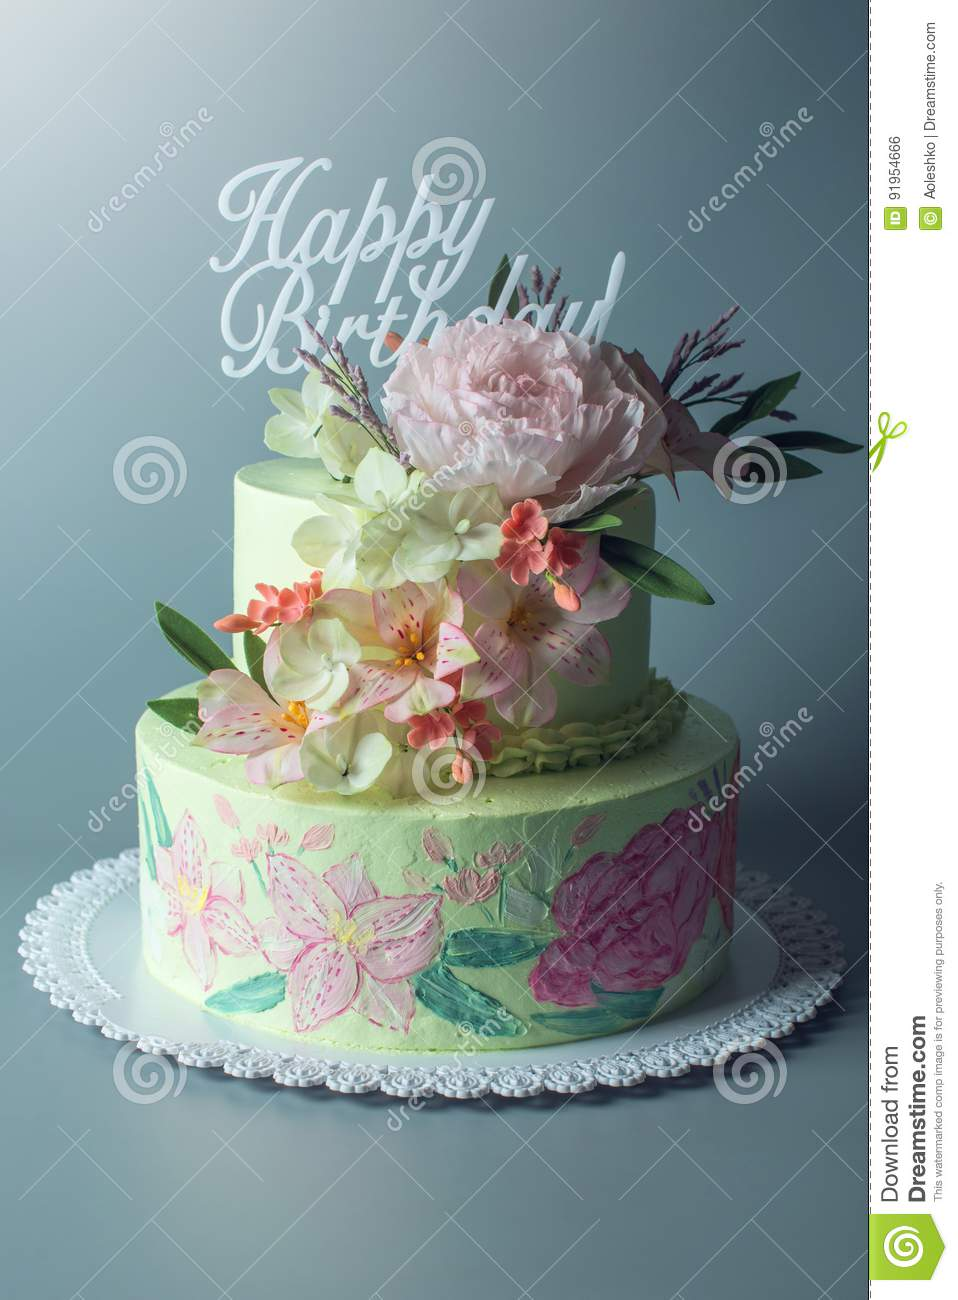 A Beautiful Spring Two Tiered Cake Decorated With Roses From Mastic Top And Texts On Top Of Happy Birthday Stock Photo Image Of Background Photography 91954666